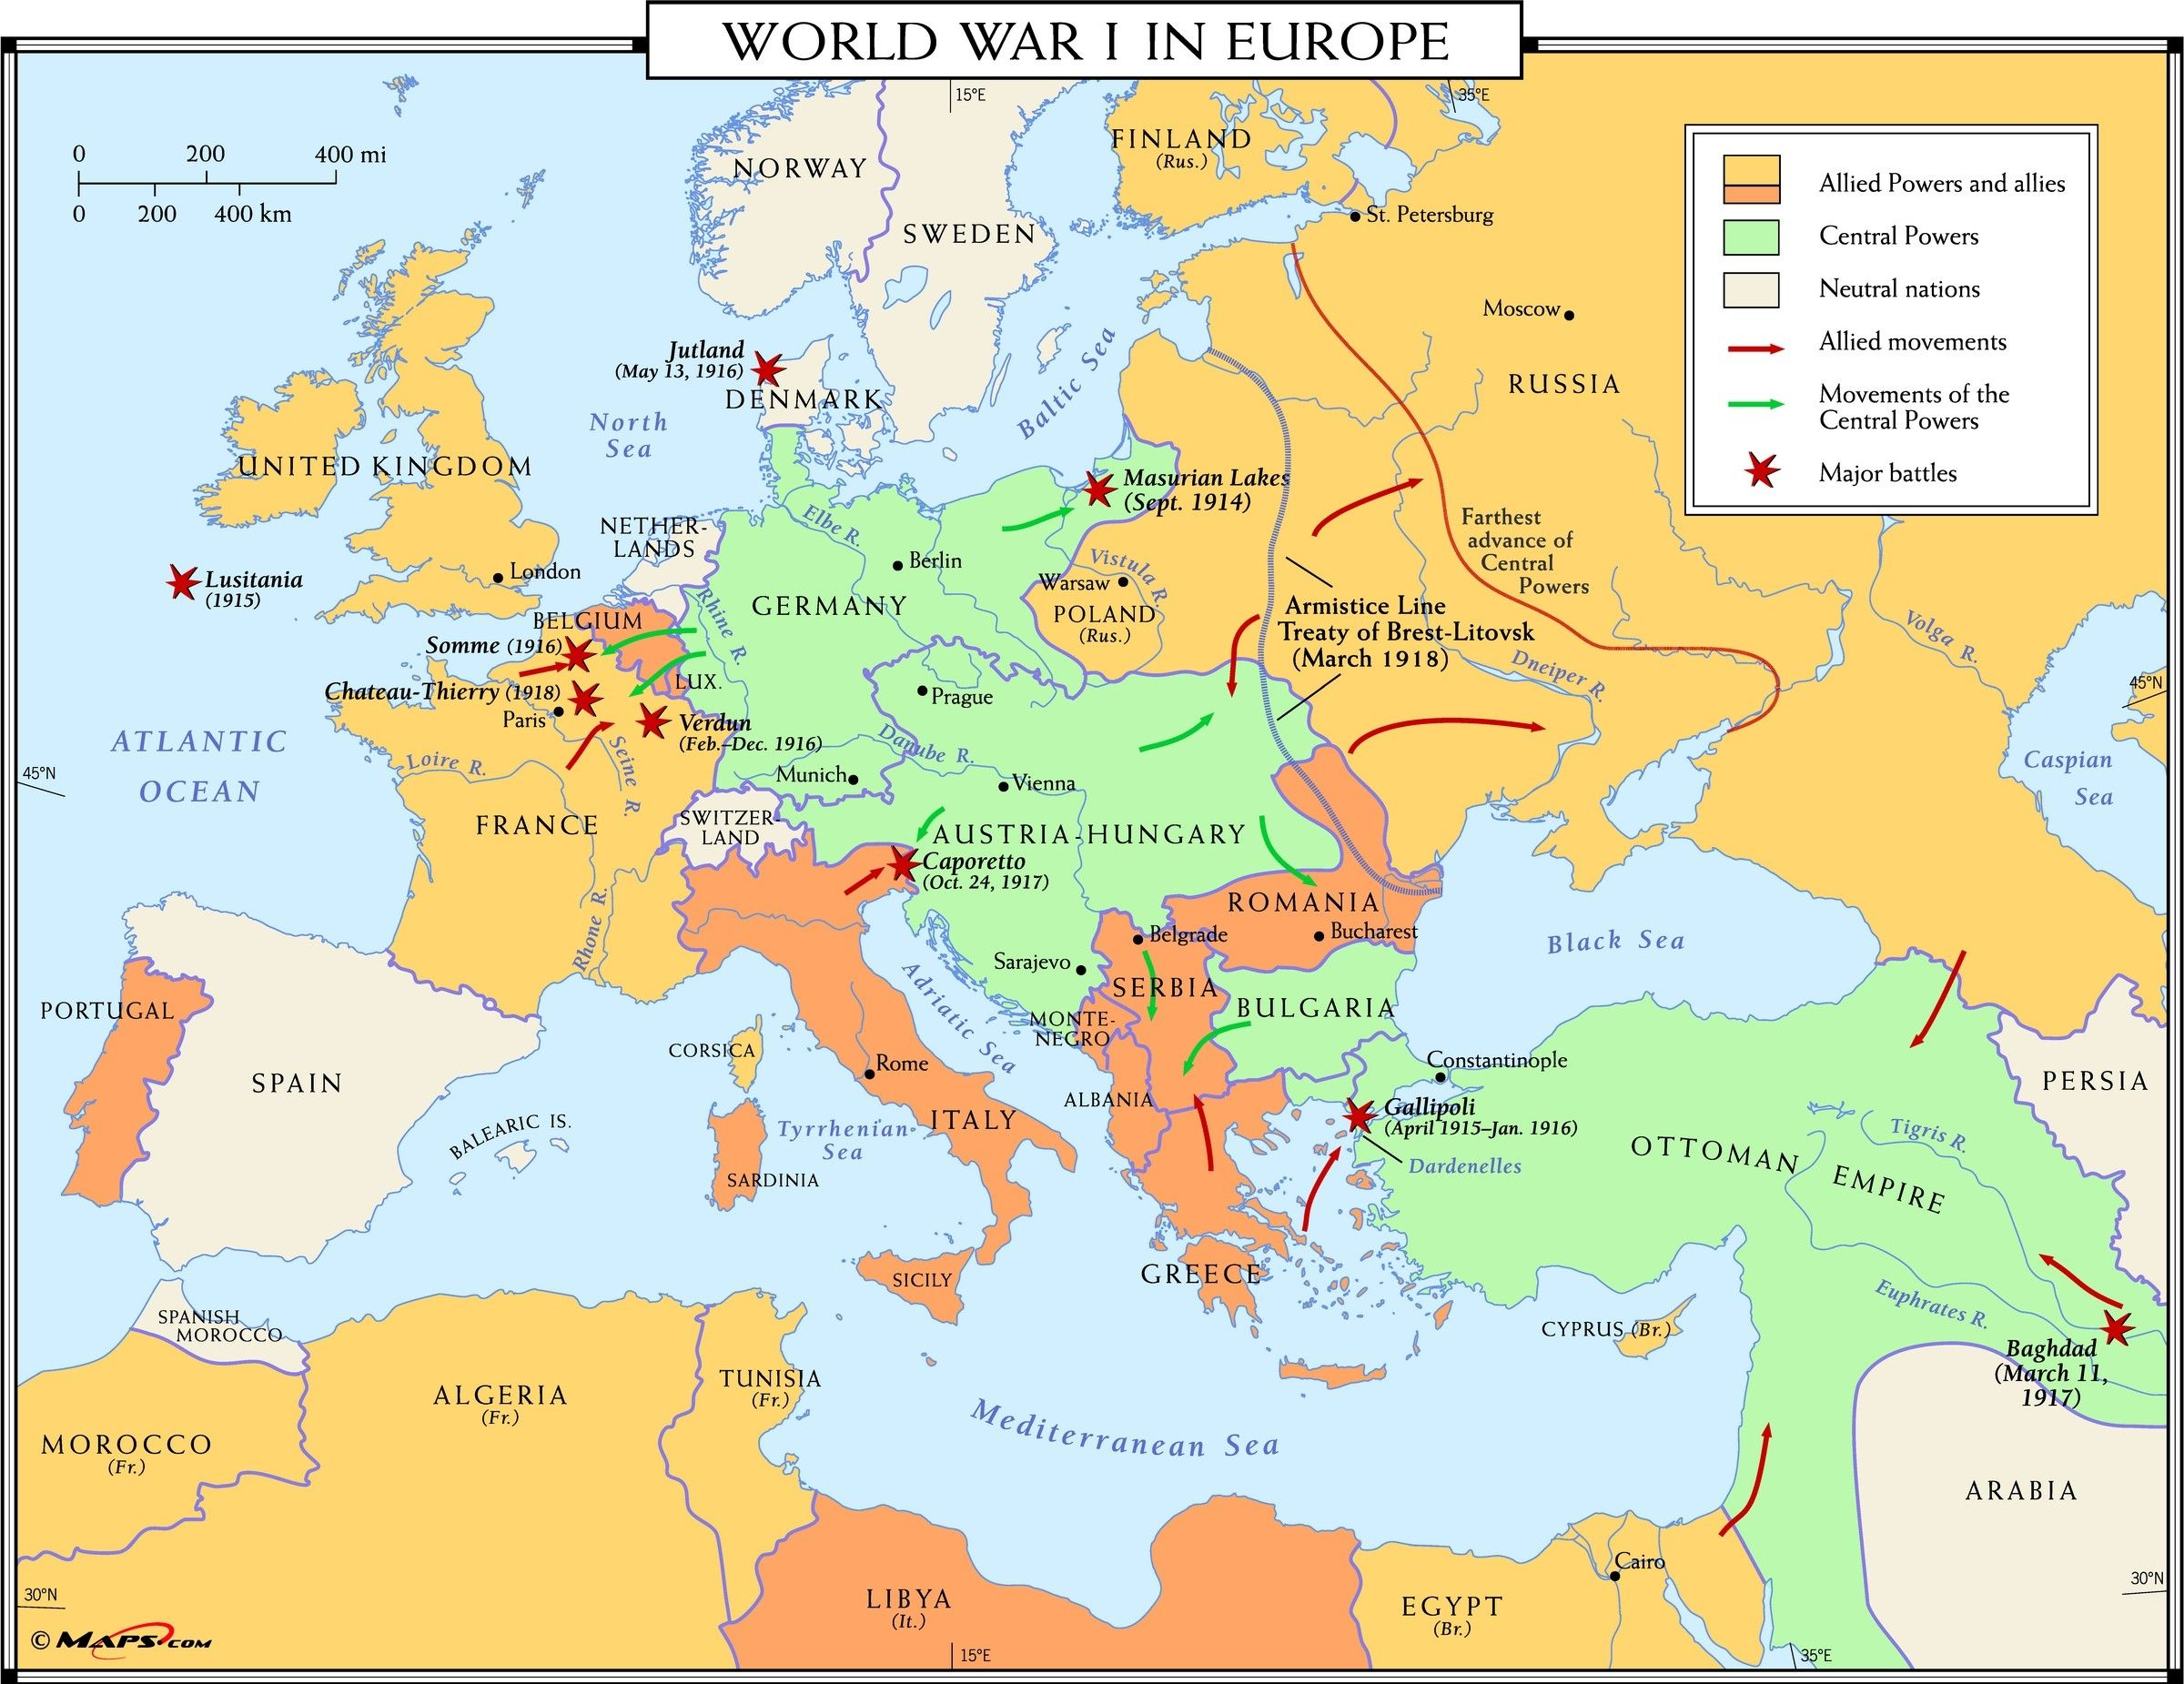 map of europe during ww1 World War I In Europe Map Maps Wwi Madriver Me New Ww1 Of